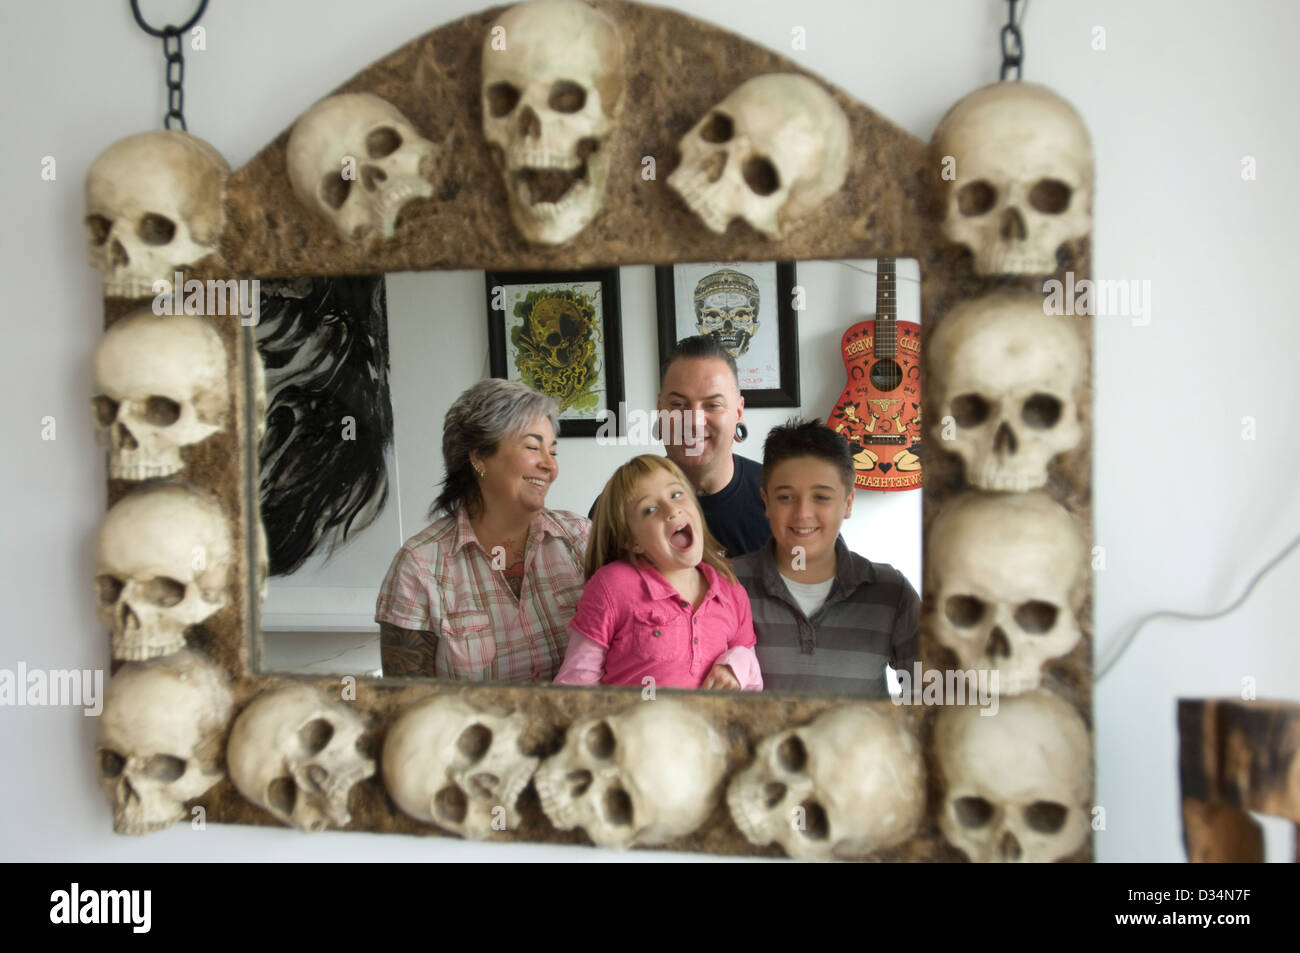 Young family reflected in a mirror with a frame of skulls - Stock Image